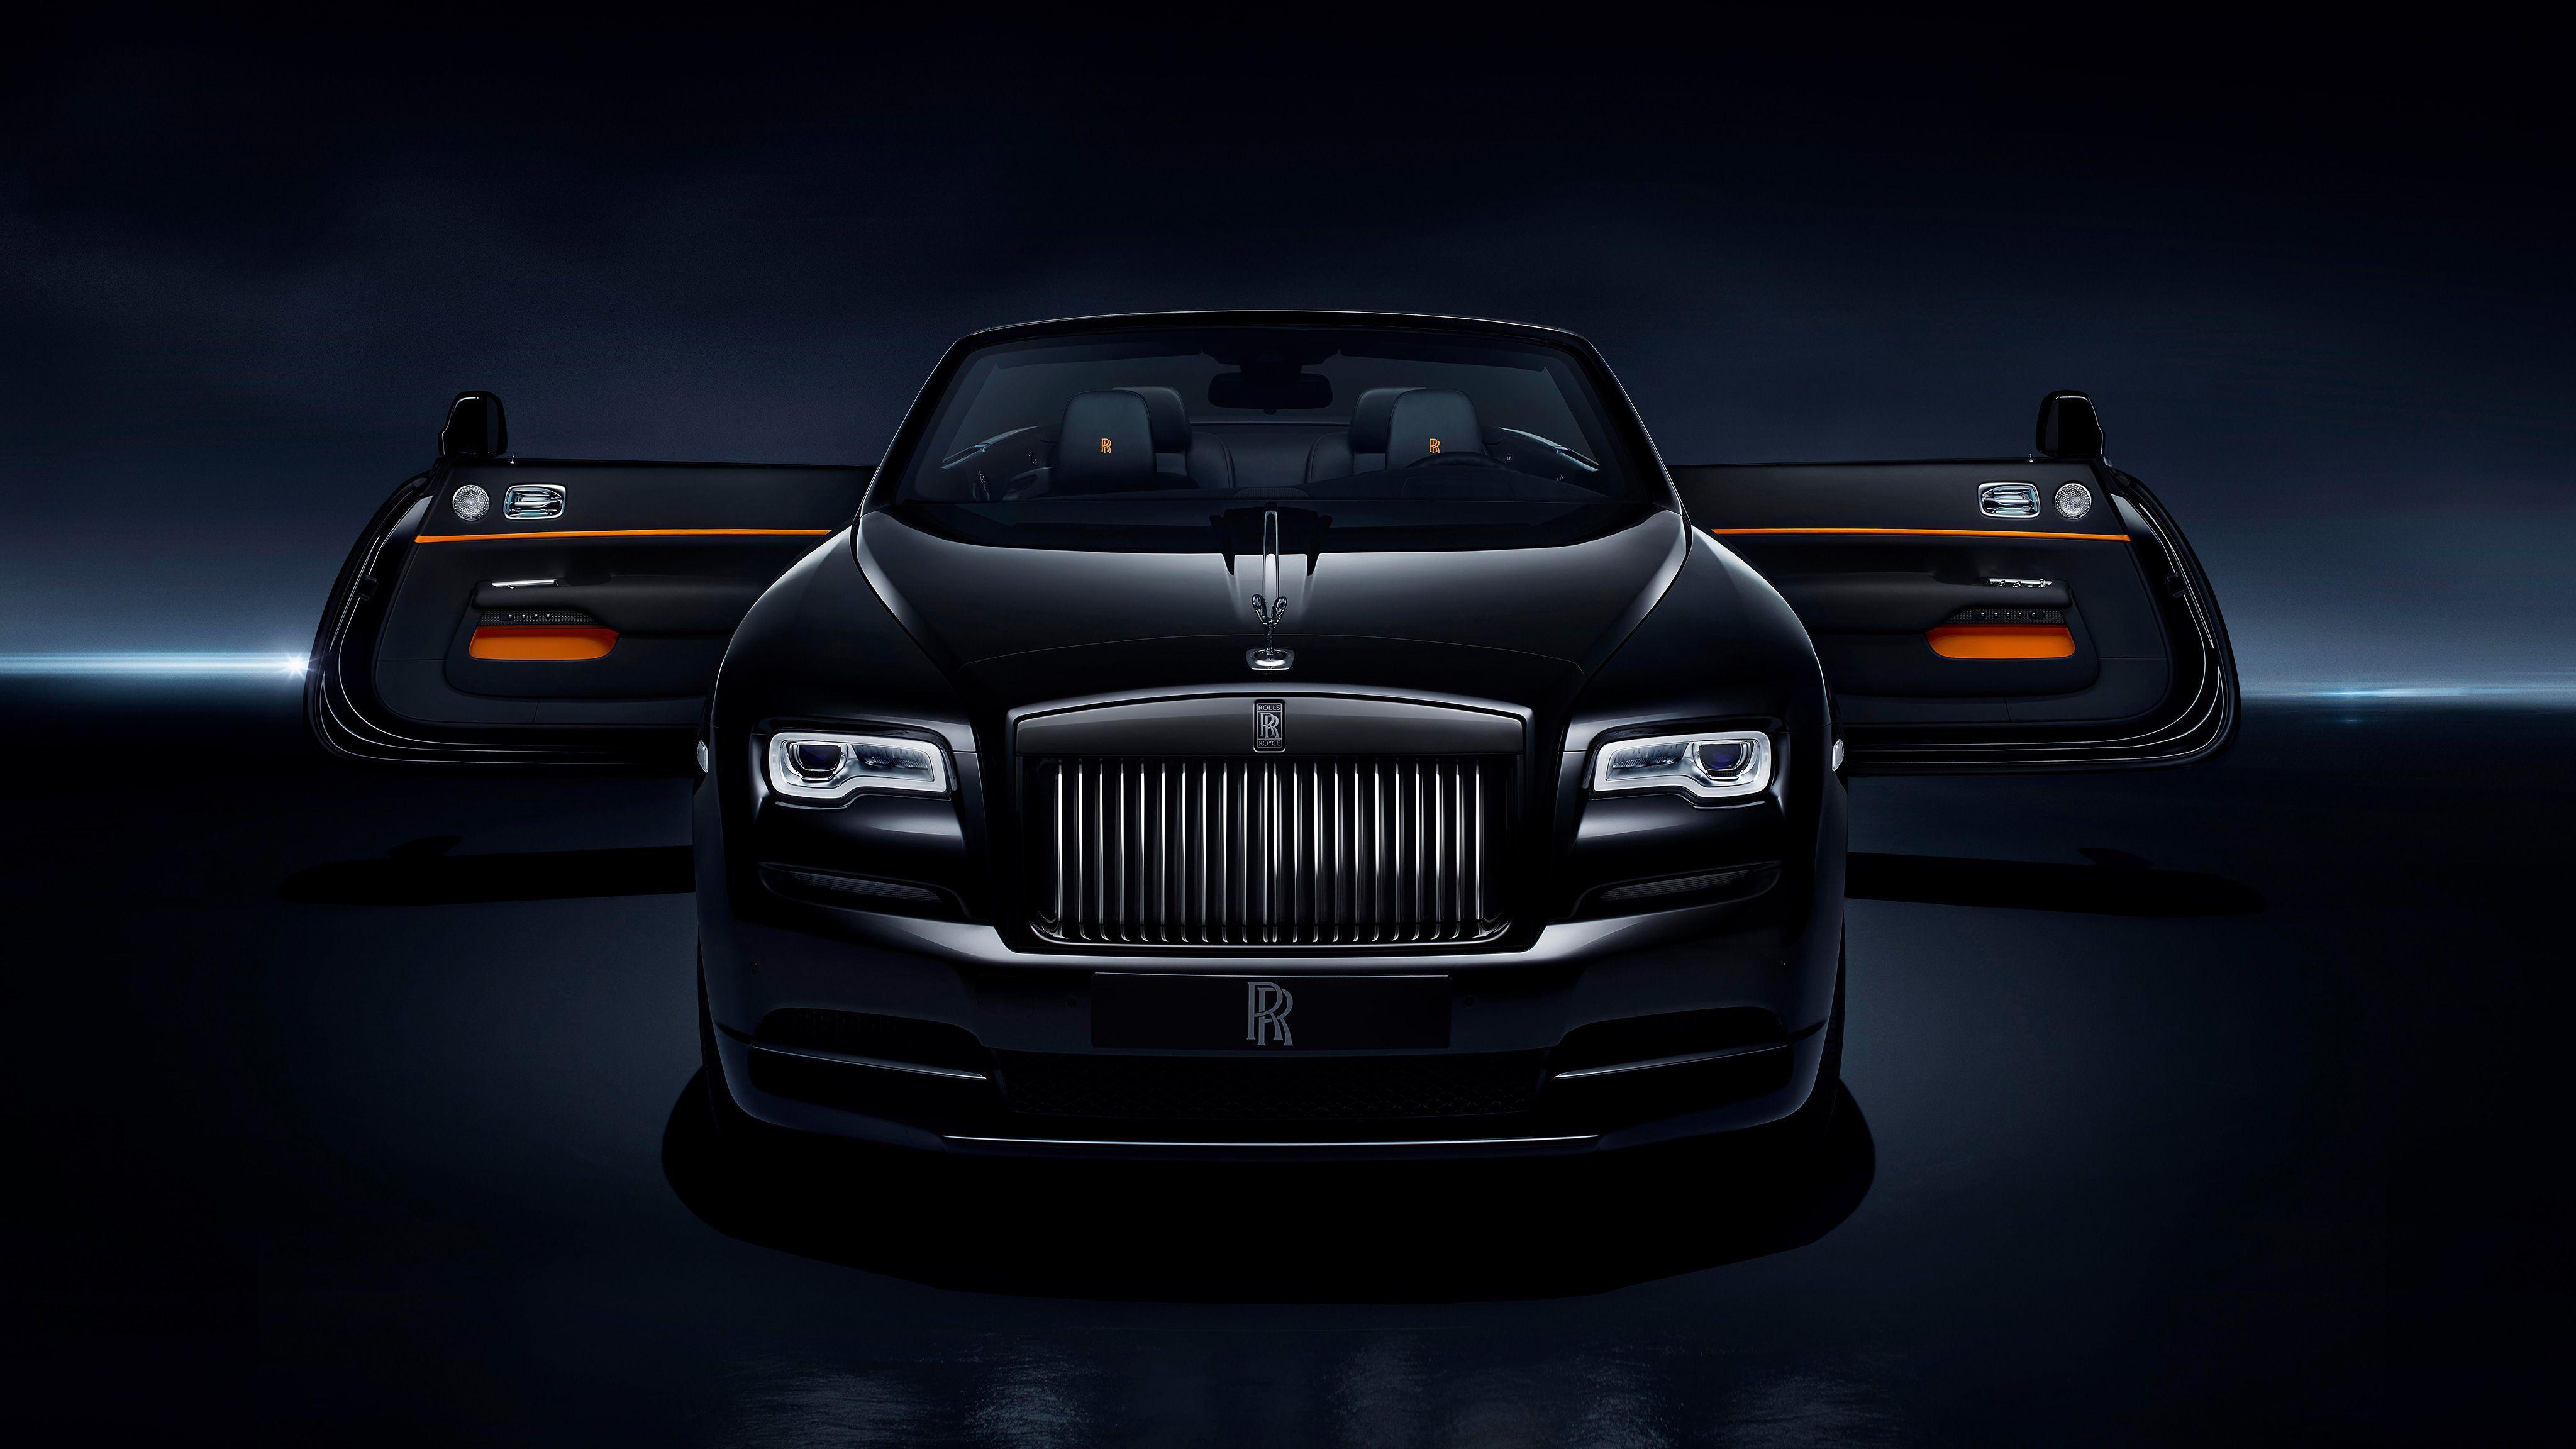 Rolls Royce Wraith Wallpapers Top Free Rolls Royce Wraith Backgrounds Wallpaperaccess